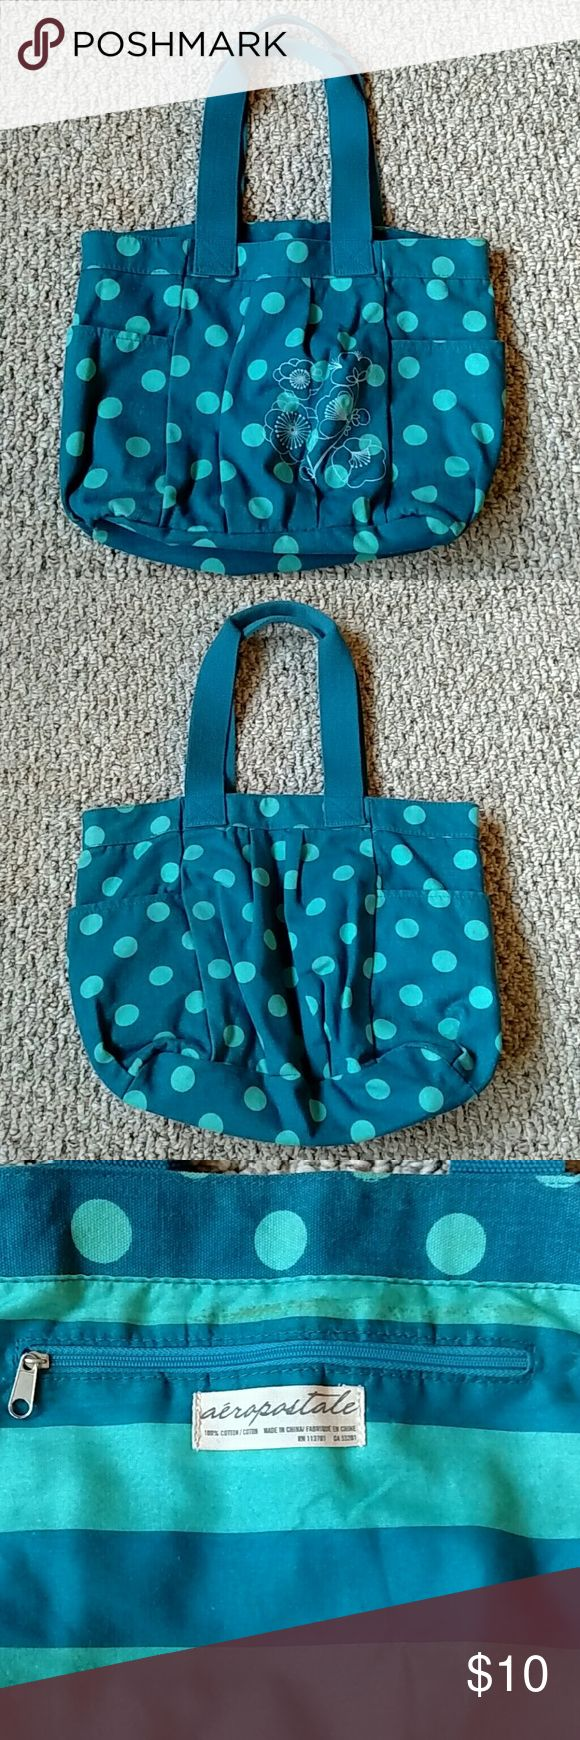 """Aeropostale Polka Dot Bag Used condition with some wear on the outside. Only major flaw is that the fabric around the zipper in the inside is discolored (pic 3 & 4). The material is canvas, blue with baby blue polka dots, and has a white floral embroidery on the front. It has an inside zipper pocket and 2 outside pockets. Length: 10"""" Width: 15"""" Depth: 5"""" Outside pockets: 7""""x 8"""" Strap Height: 9"""" Aeropostale Bags Shoulder Bags"""